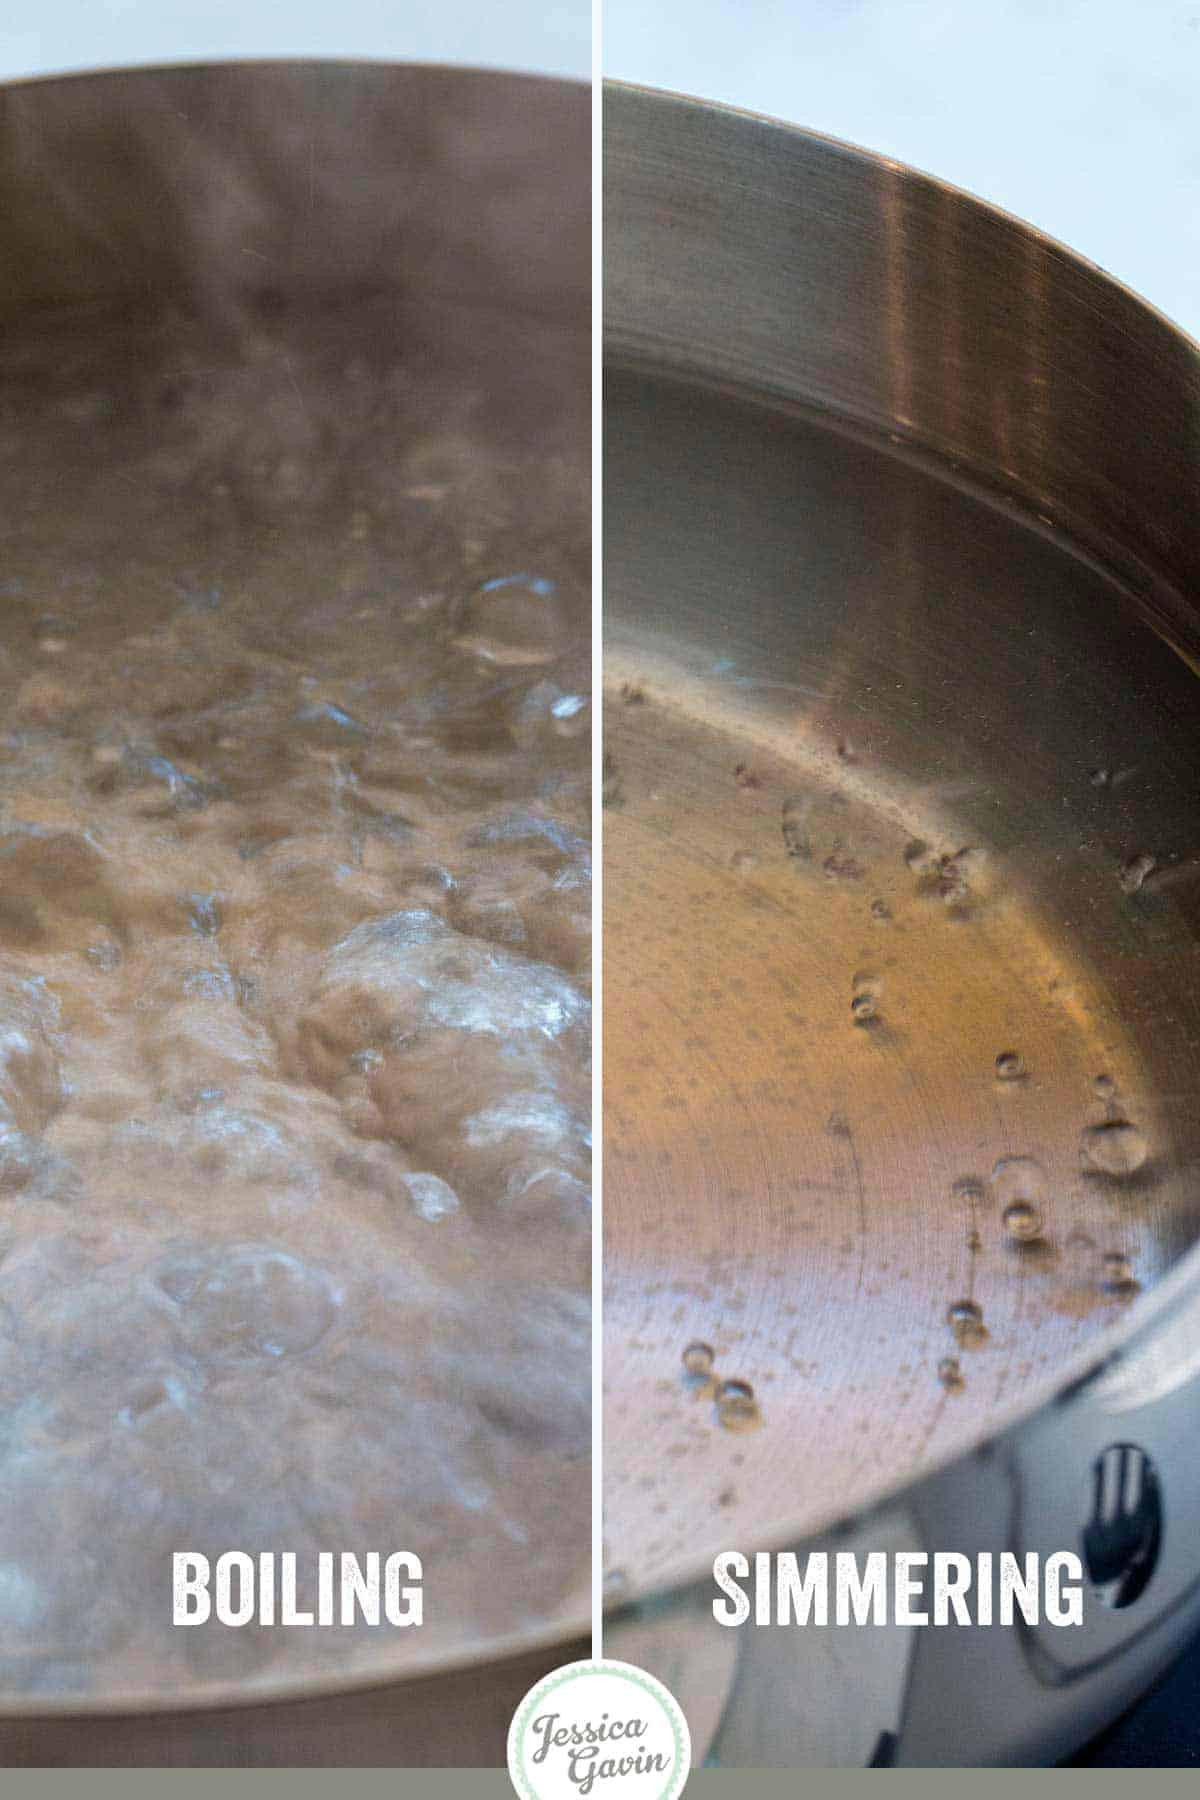 Side-by-side comparison of boiling water vs simmering water